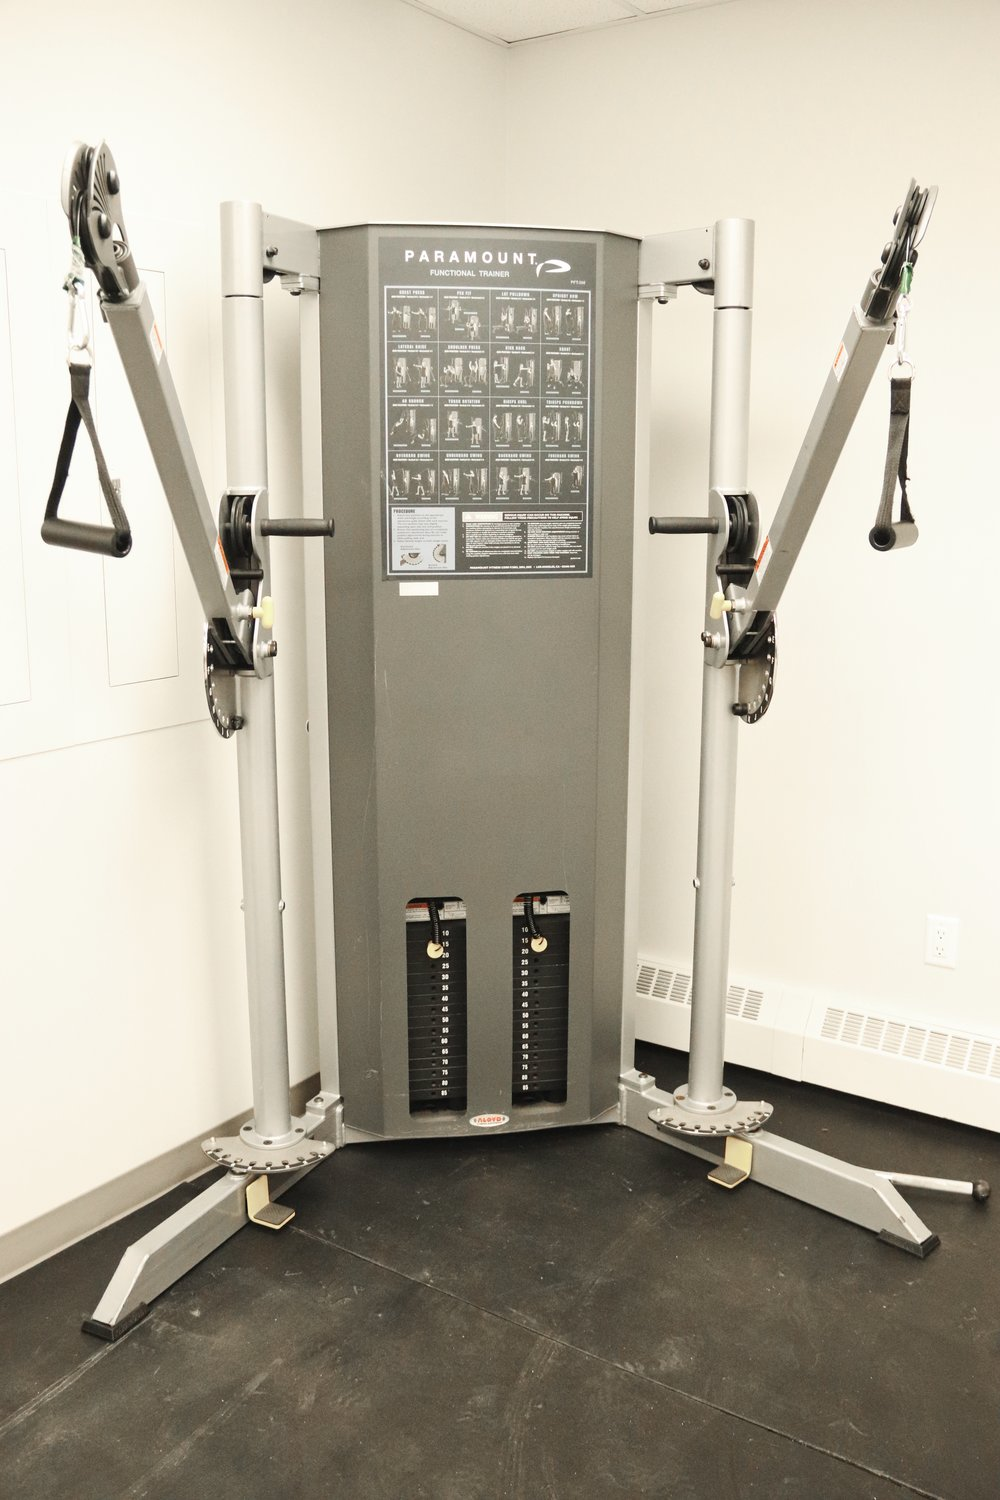 paramount - This machine allows individuals to engage in resistance training within their unique range of motion.